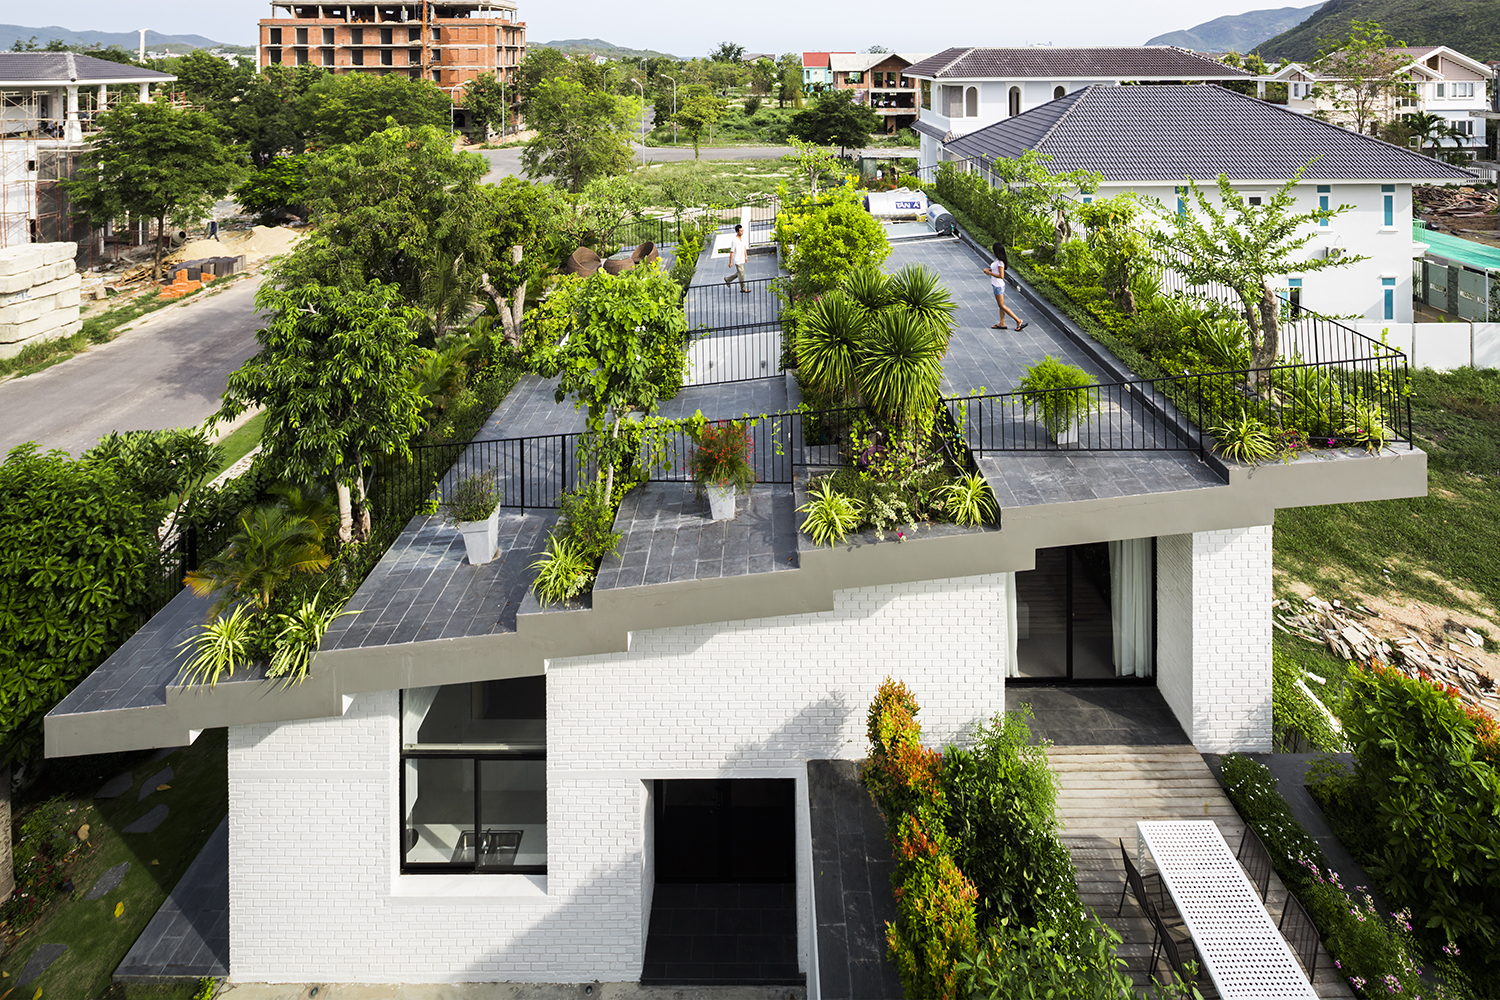 A House in Nha Trang / Vo Trong Nghia Architects + ICADA